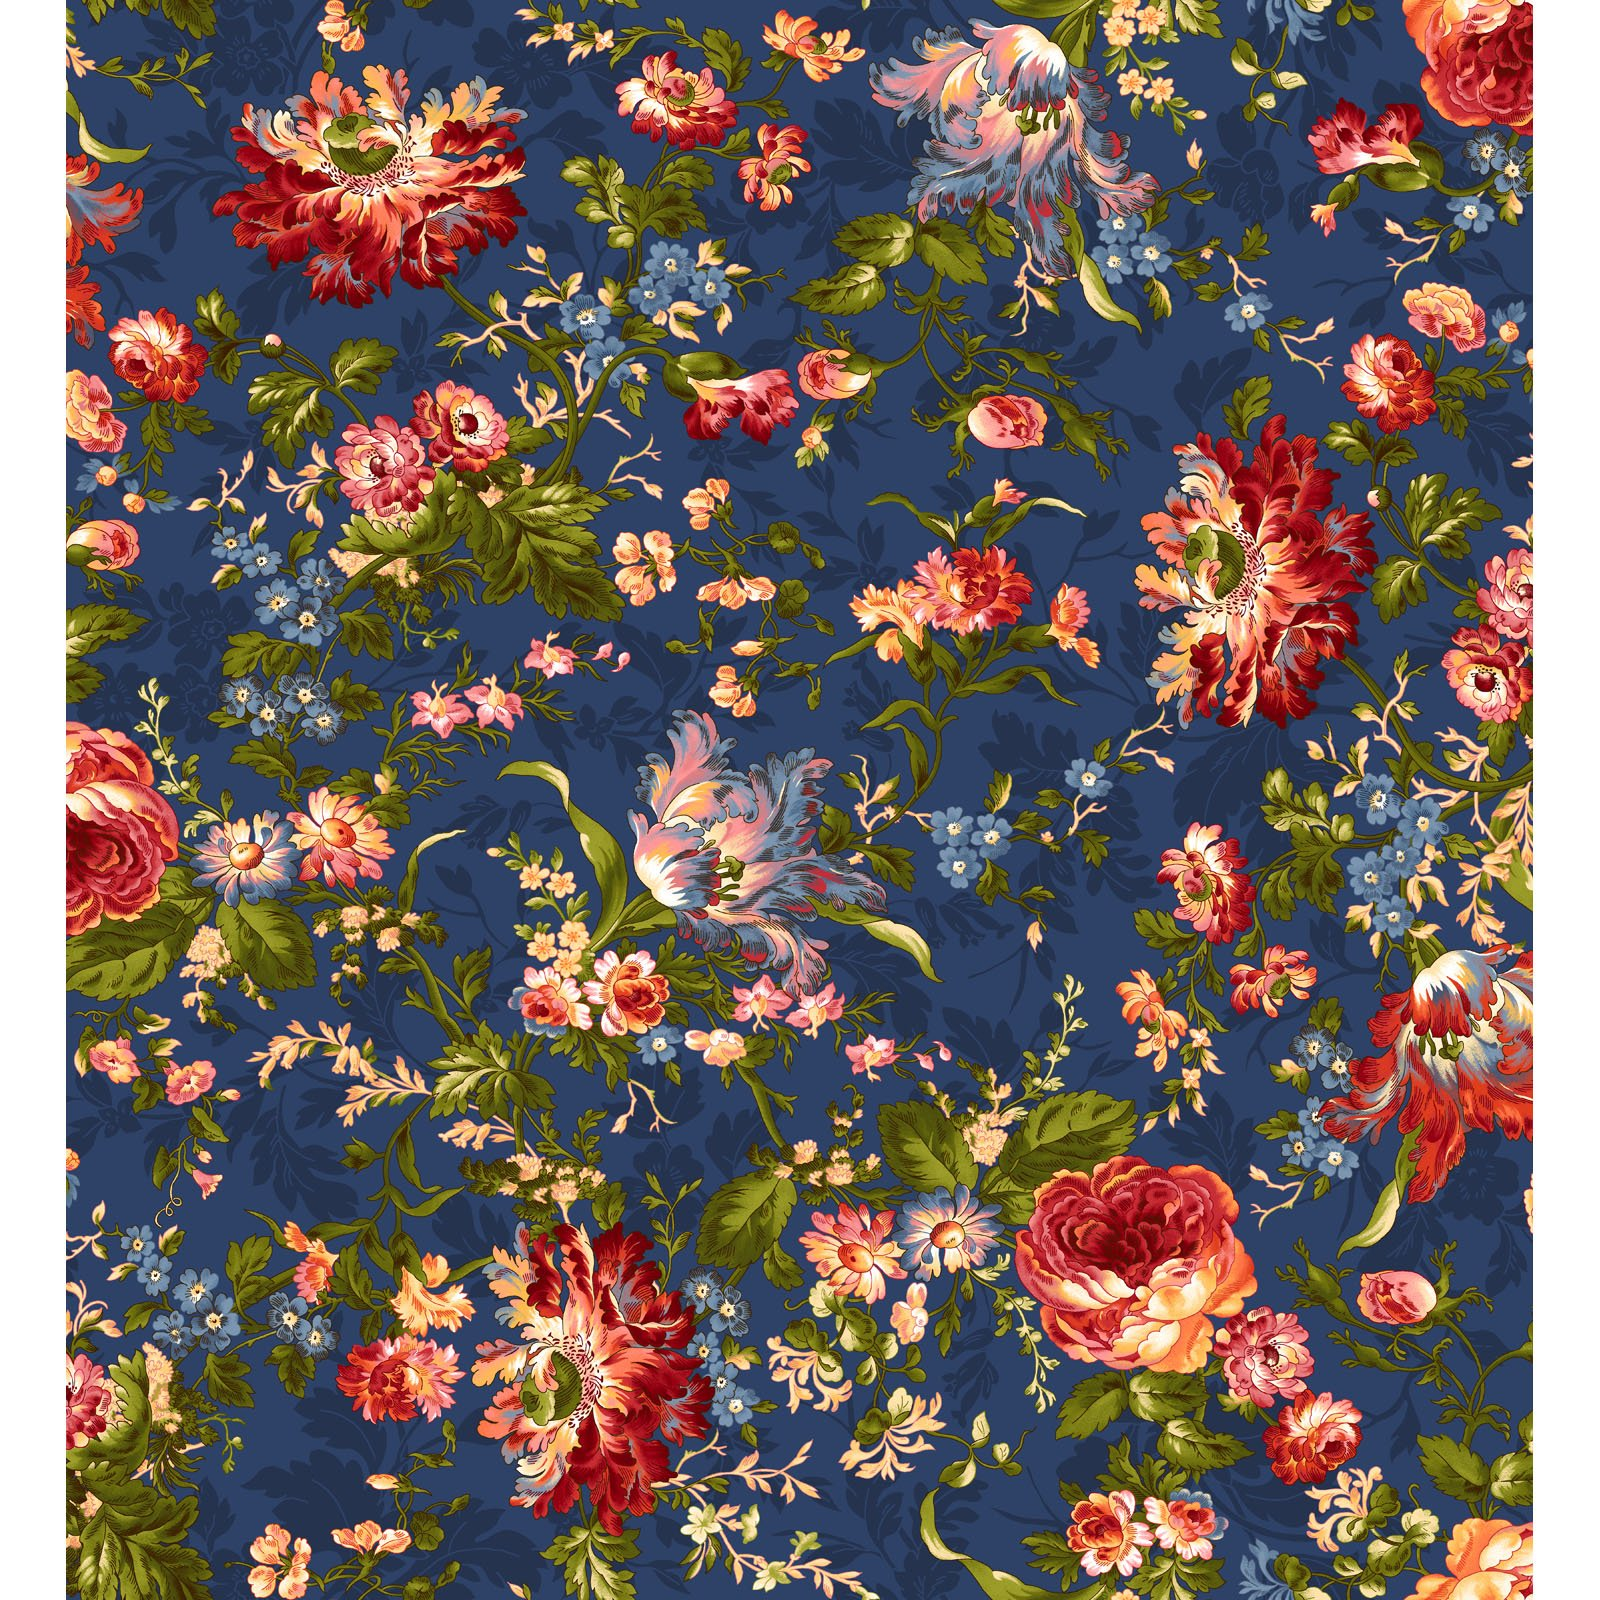 EESC-9870 N - BELLE EPOQUE BY MAYWOOD STUDIO BOLD FLORAL NAVY - ARRIVING JANUARY 2021